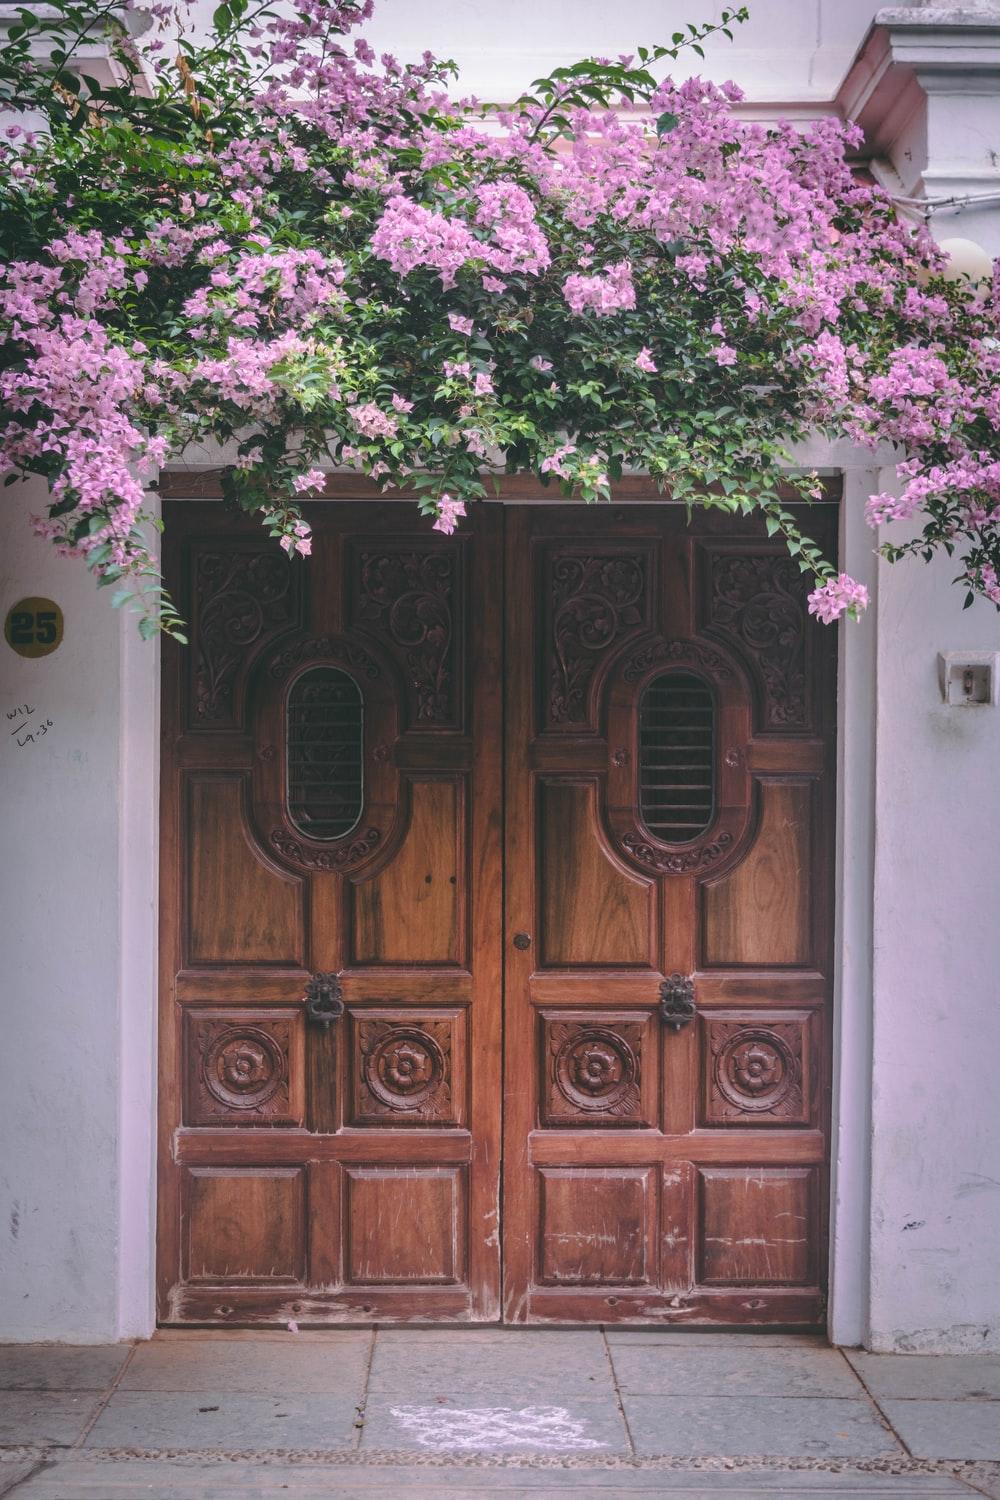 pink bougainvillea flowers above closed doors